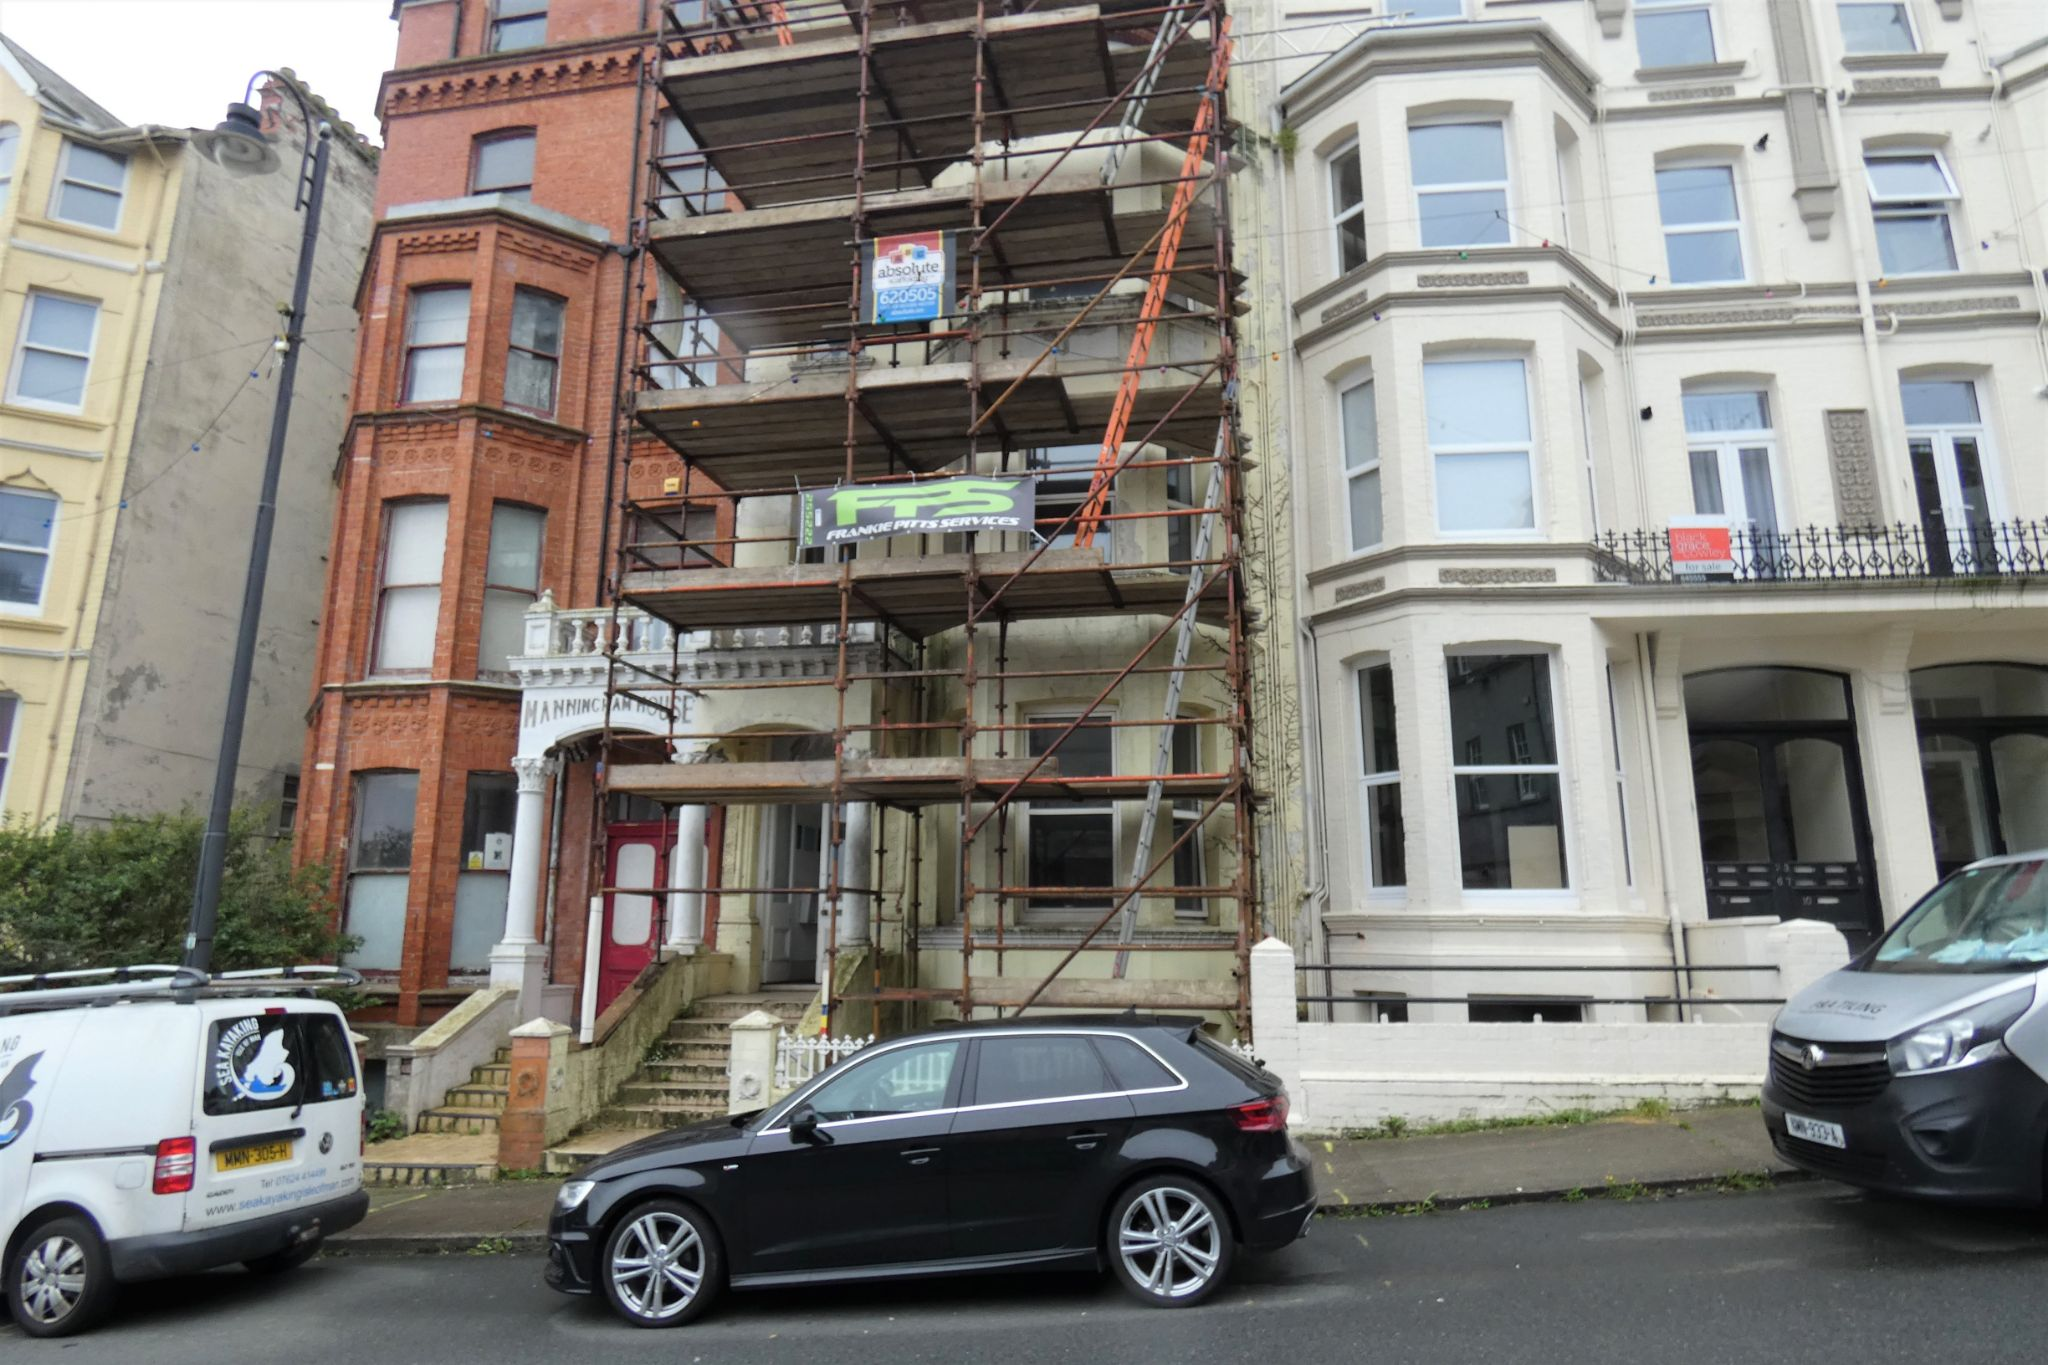 2 bedroom apartment flat/apartment Sold in Douglas - Photograph 1